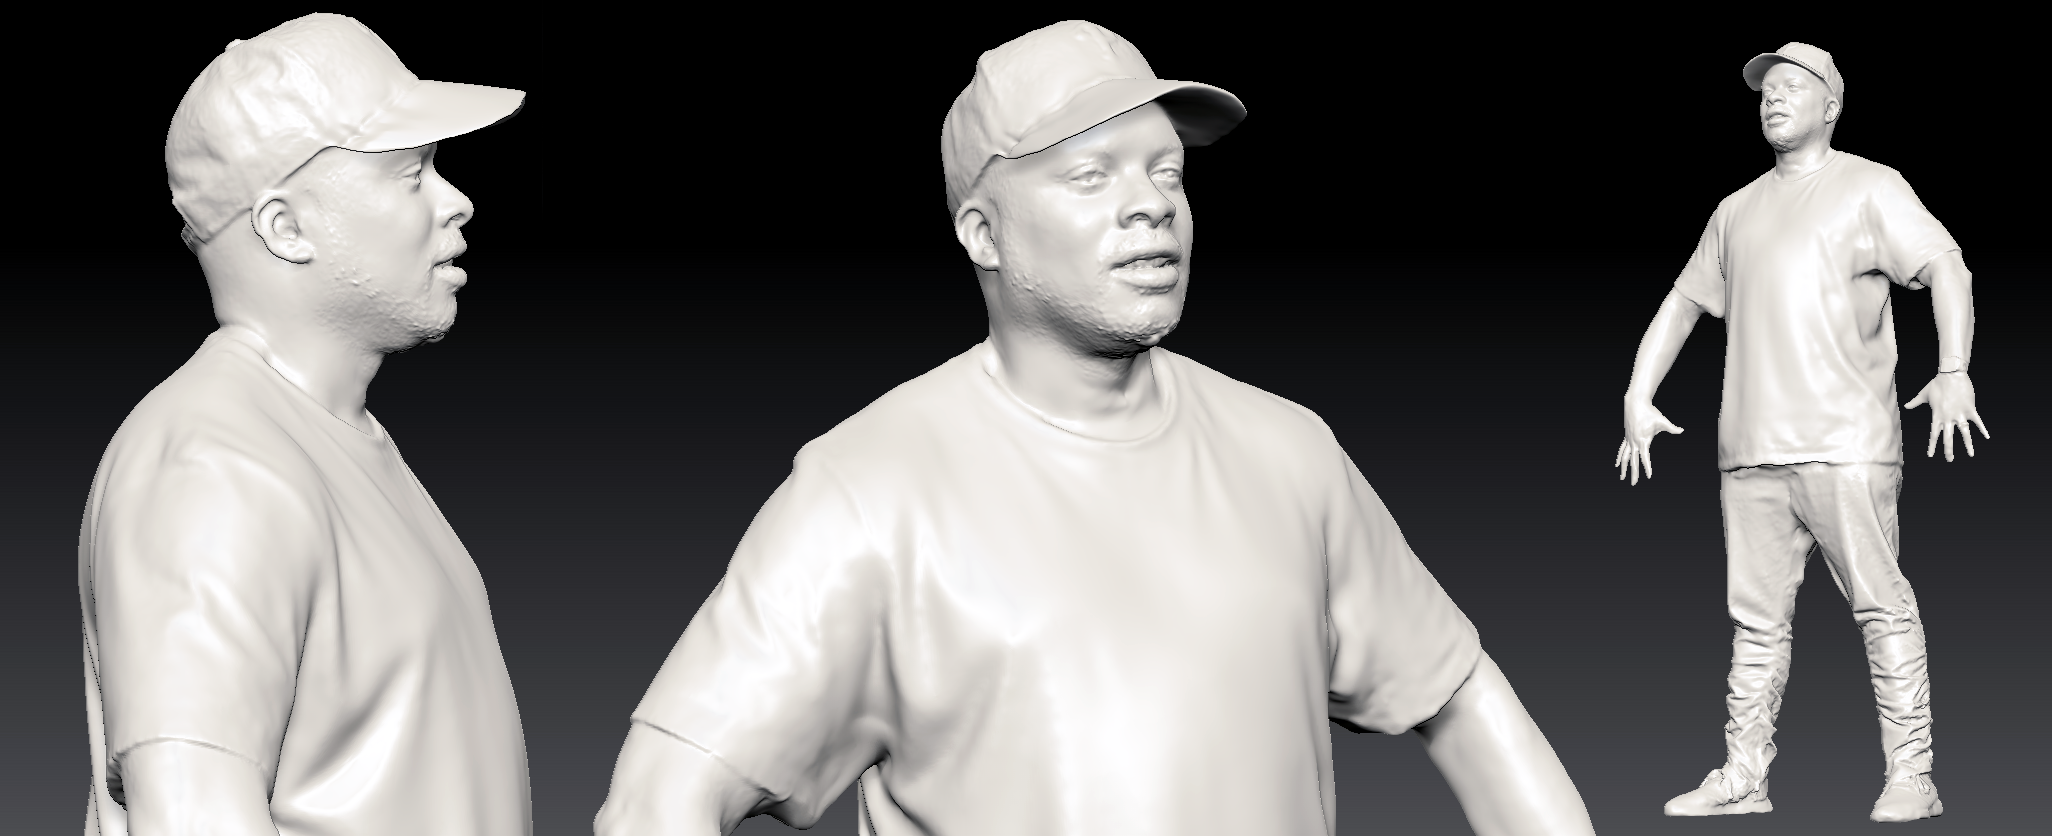 Jazzy Jeff Videogrammetry Scan No Texture